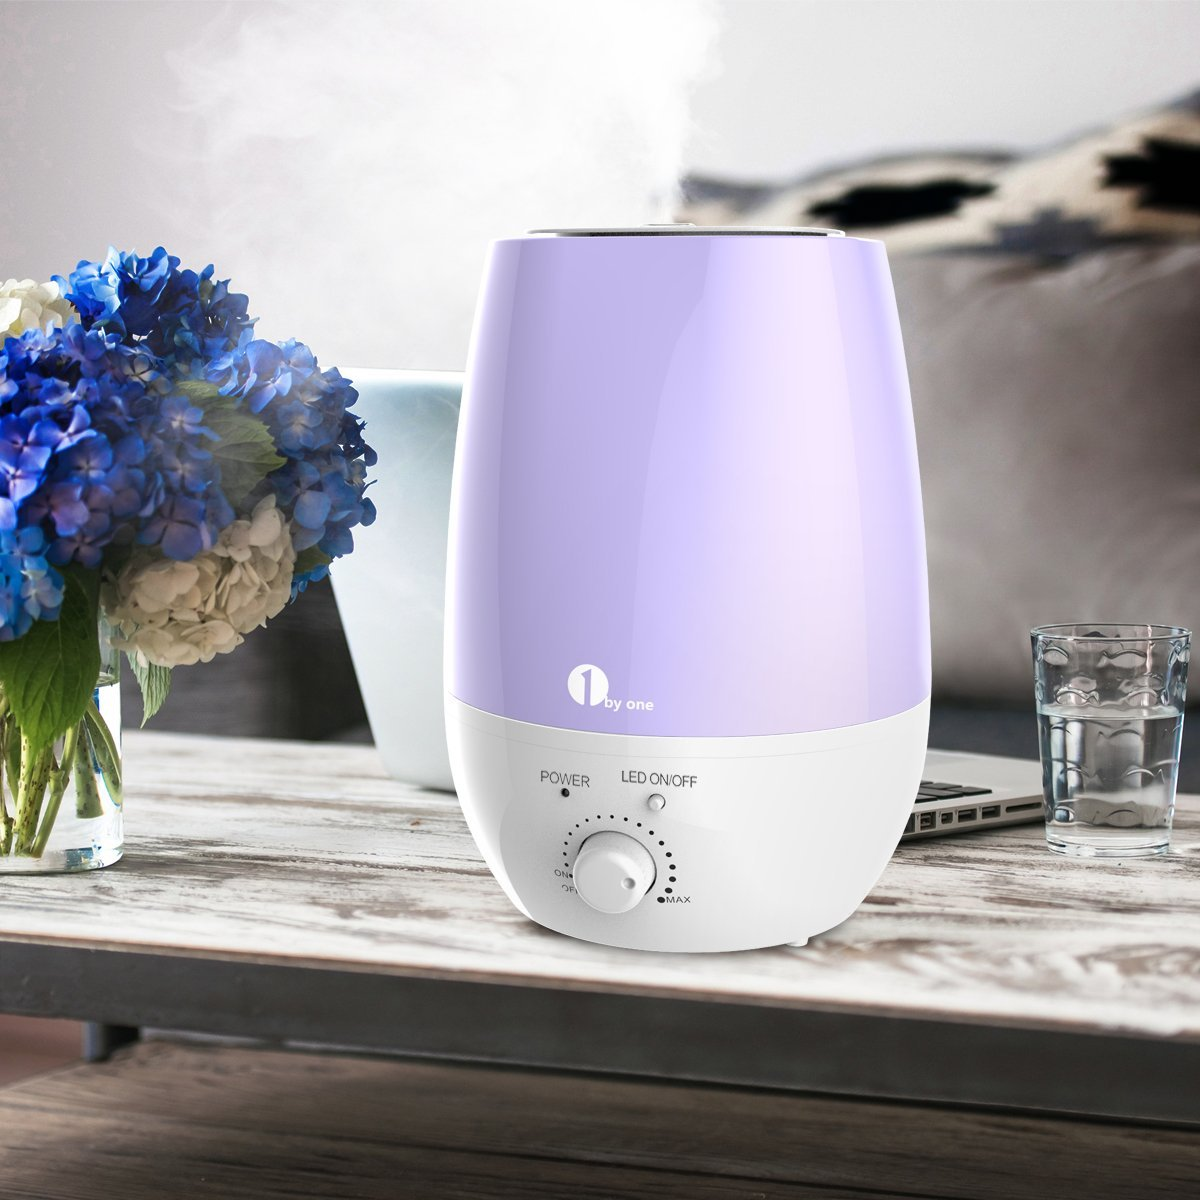 Breathe better with 1byone's Ultrasonic Cool Mist Humidifier